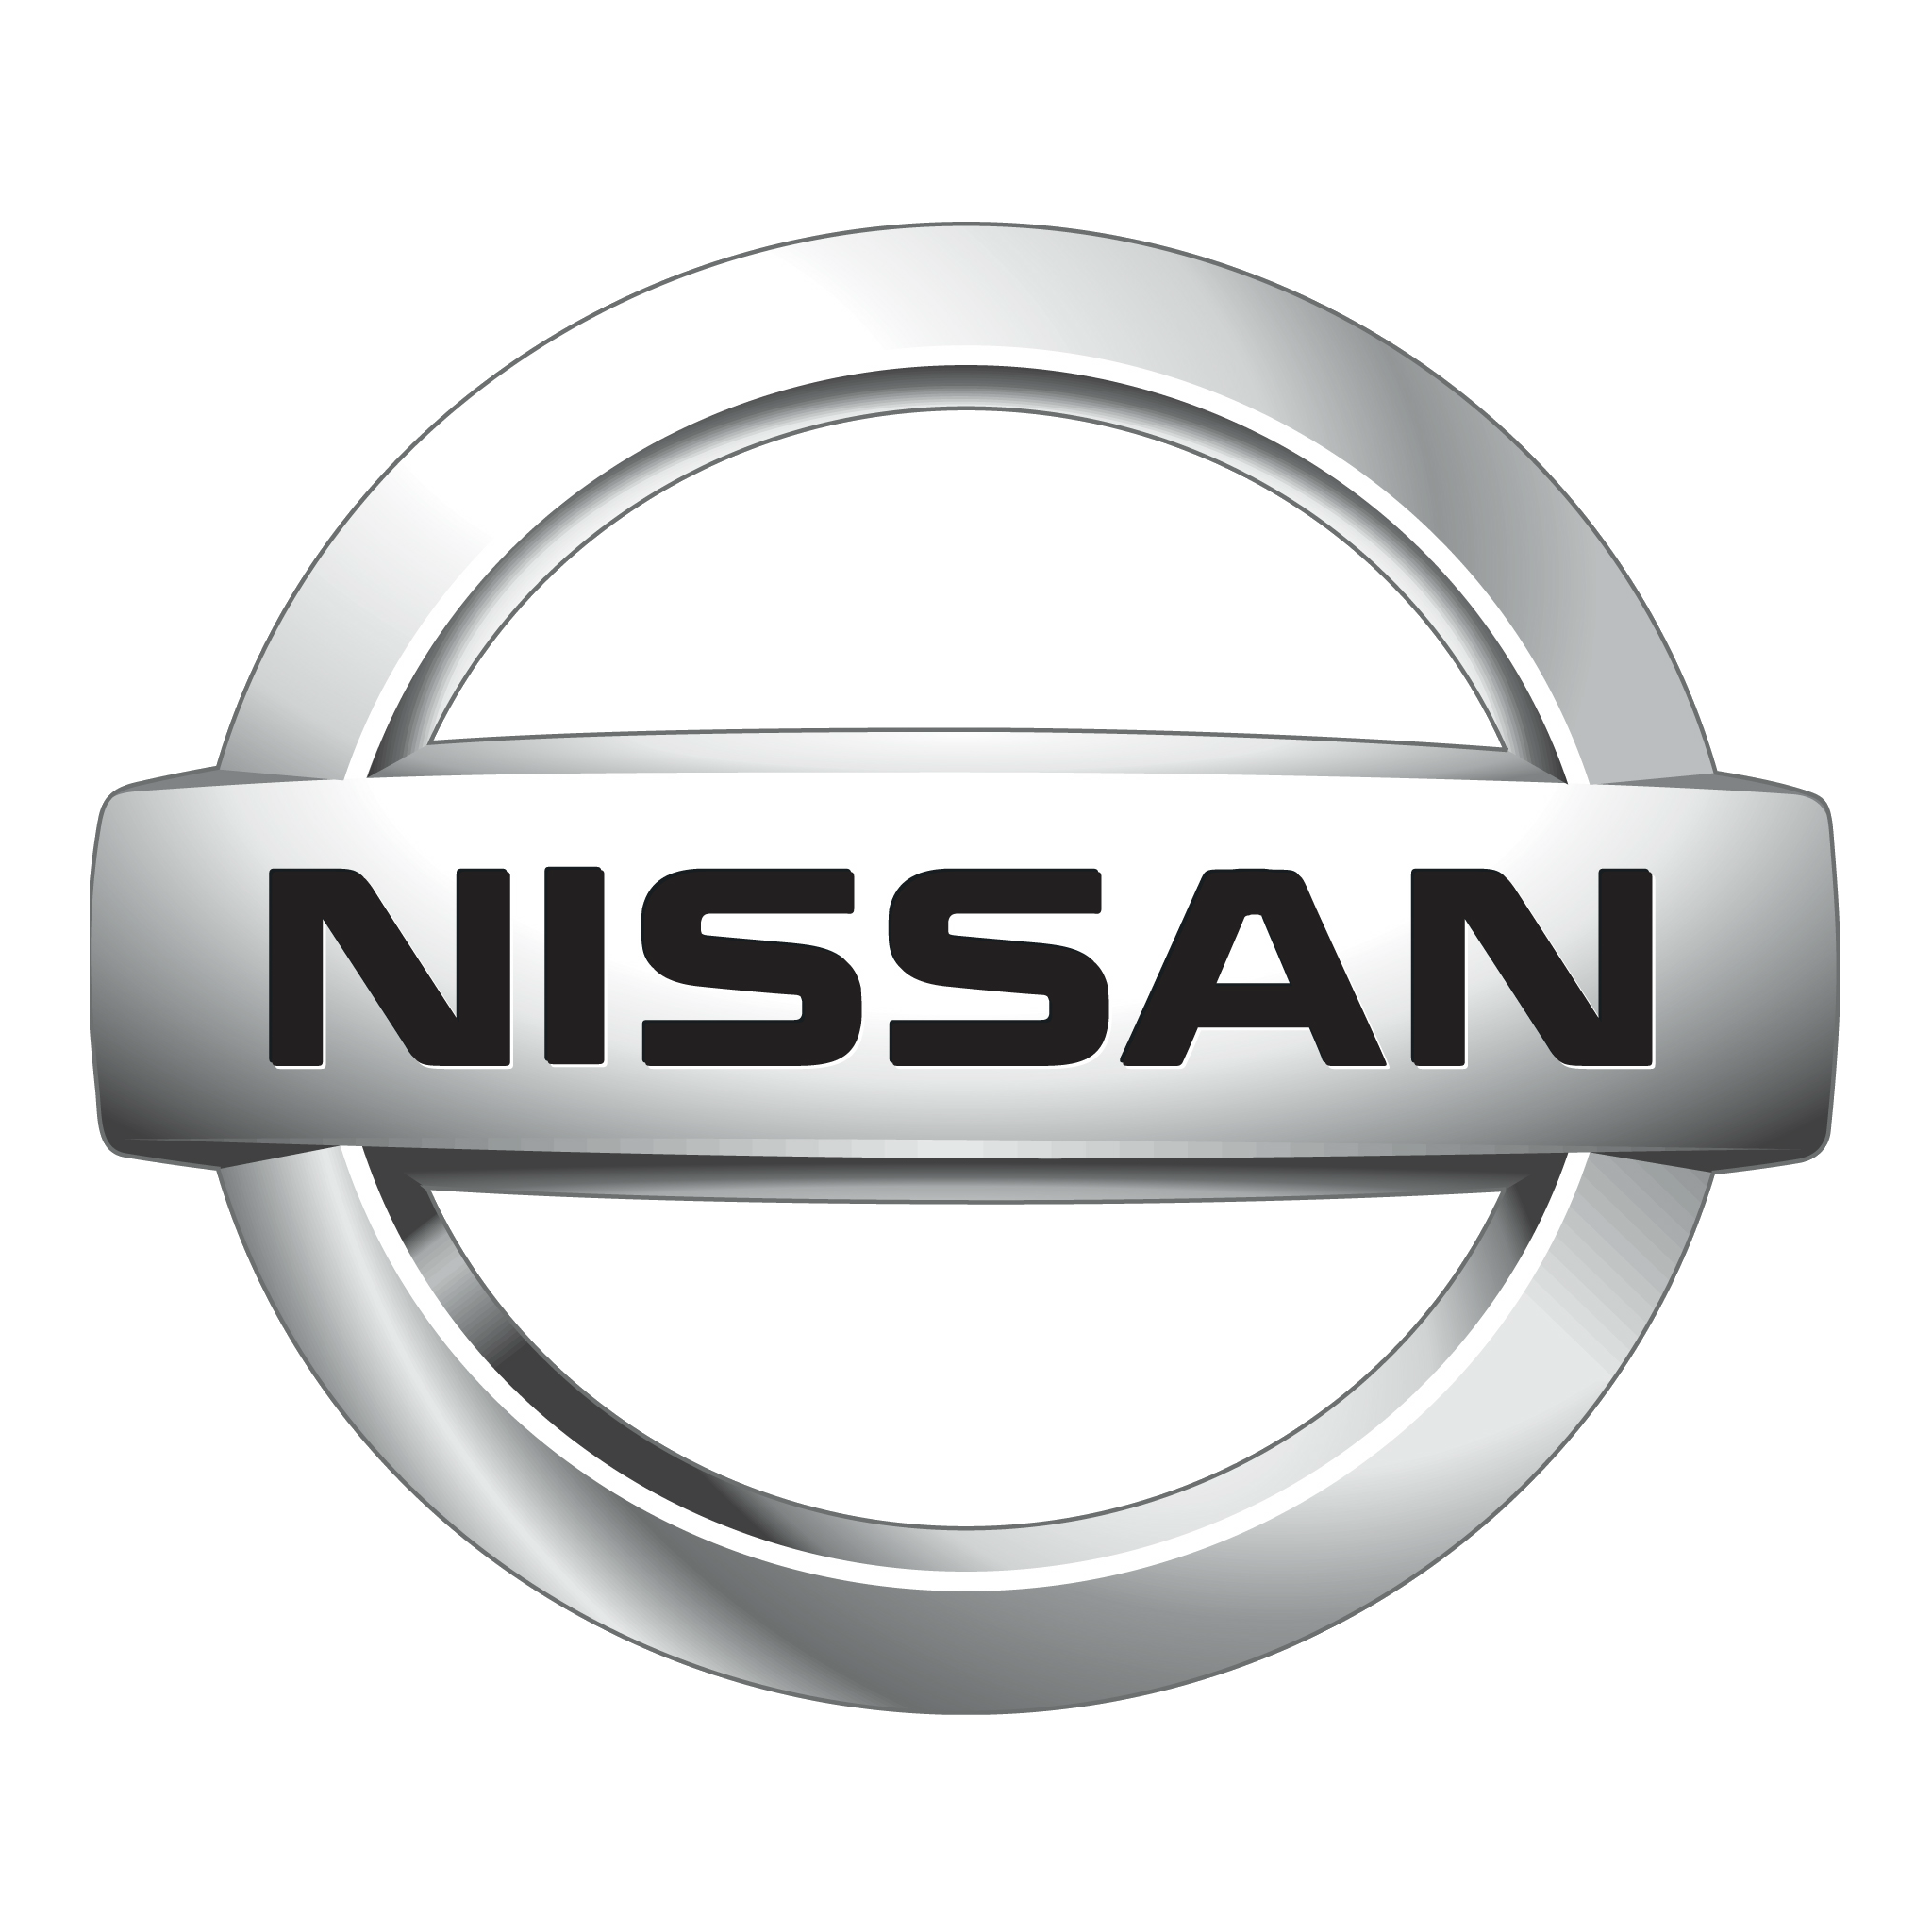 2048x2048 (HD Png) - Nissan PNG